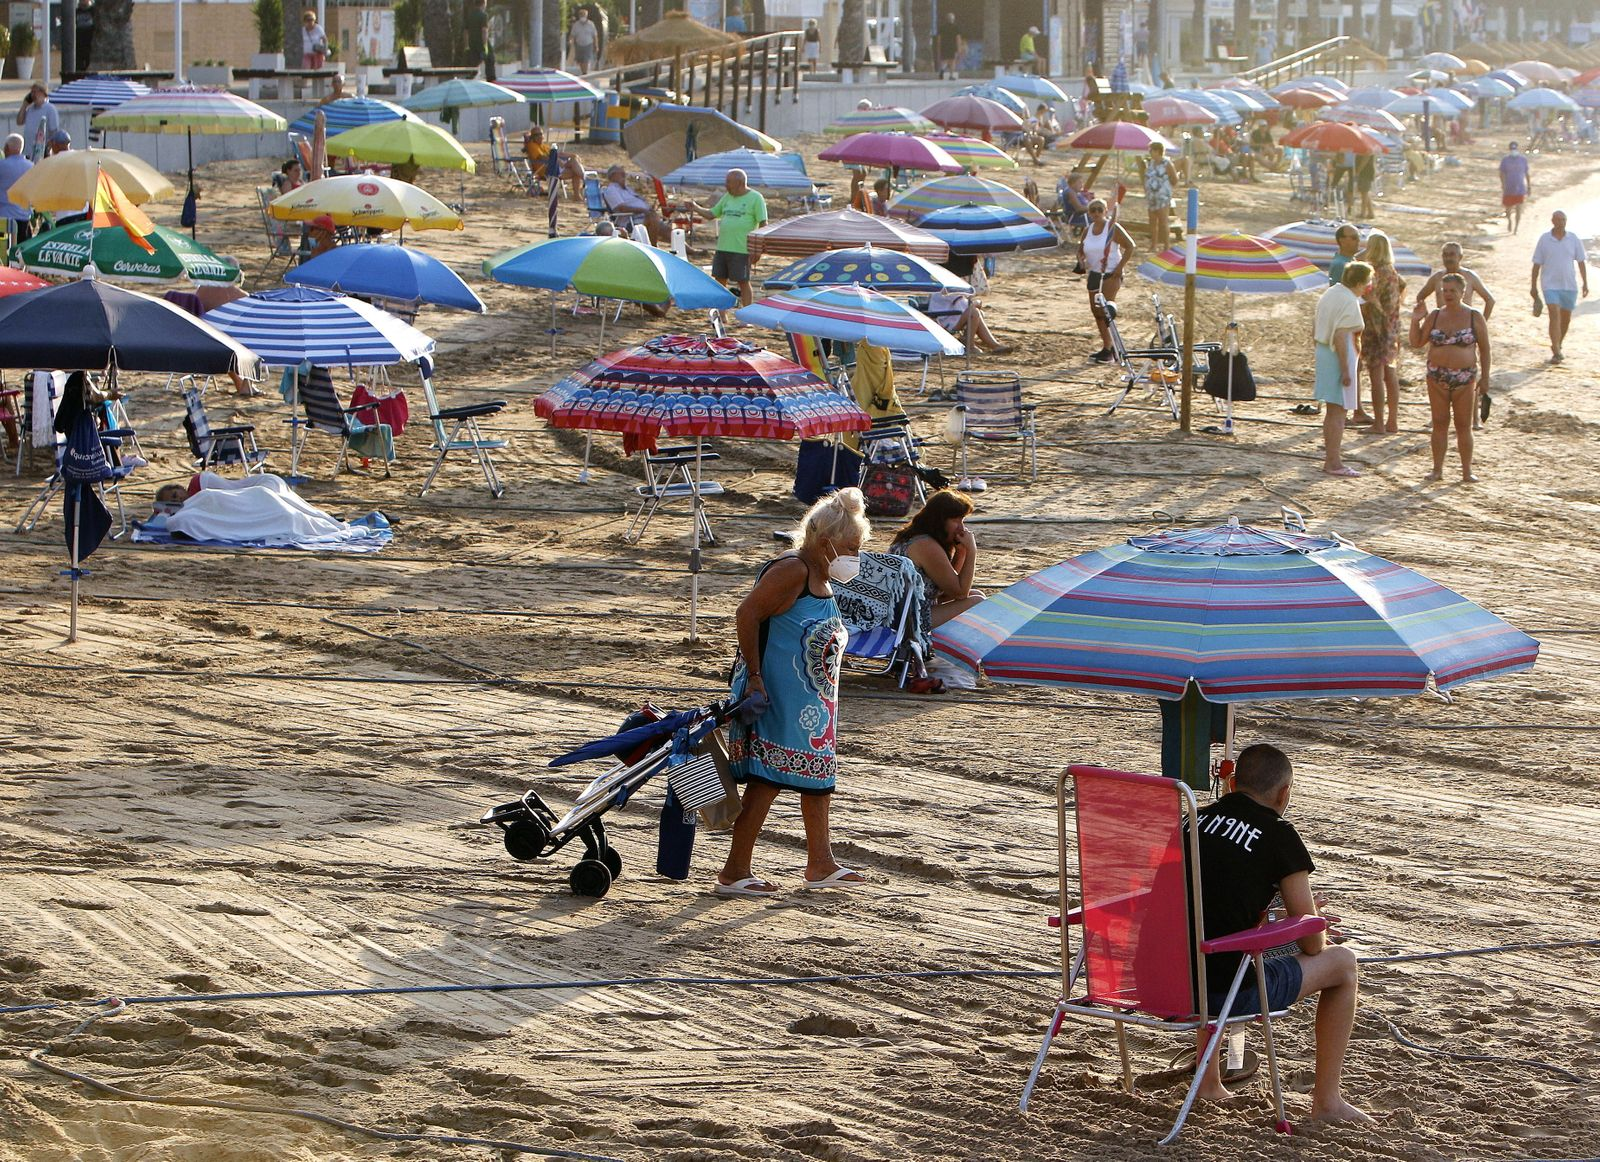 Sunbathers have to keep distance on beach in Torrevieja